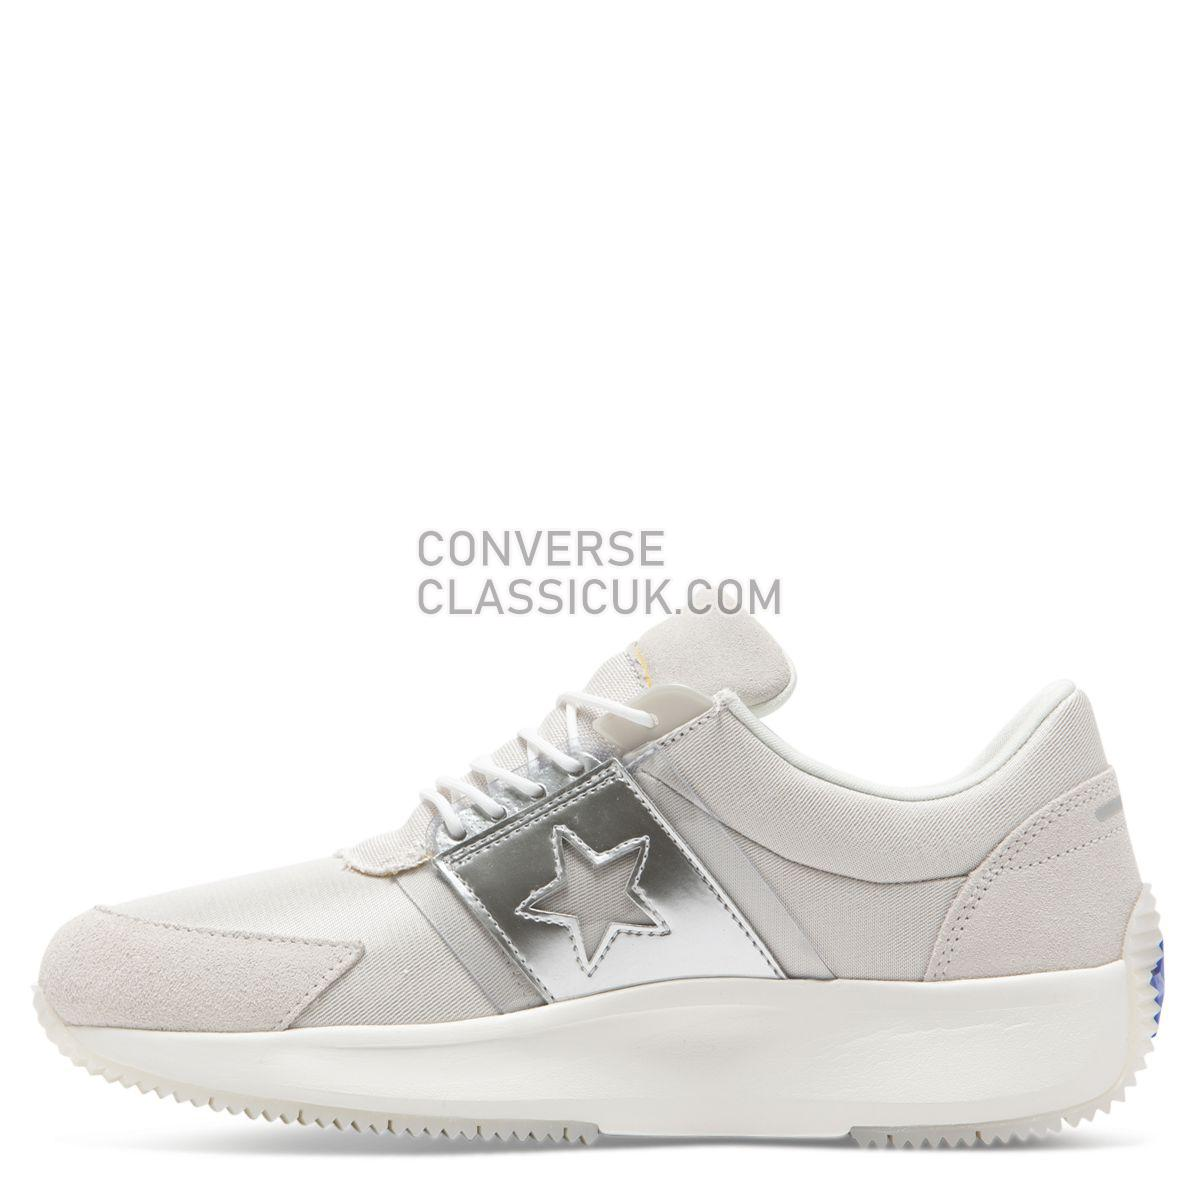 Converse Run Star Spacecraft Low Top Pale Putty Mens 165060 Pale Putty/Pure Silver/Vintage White Shoes